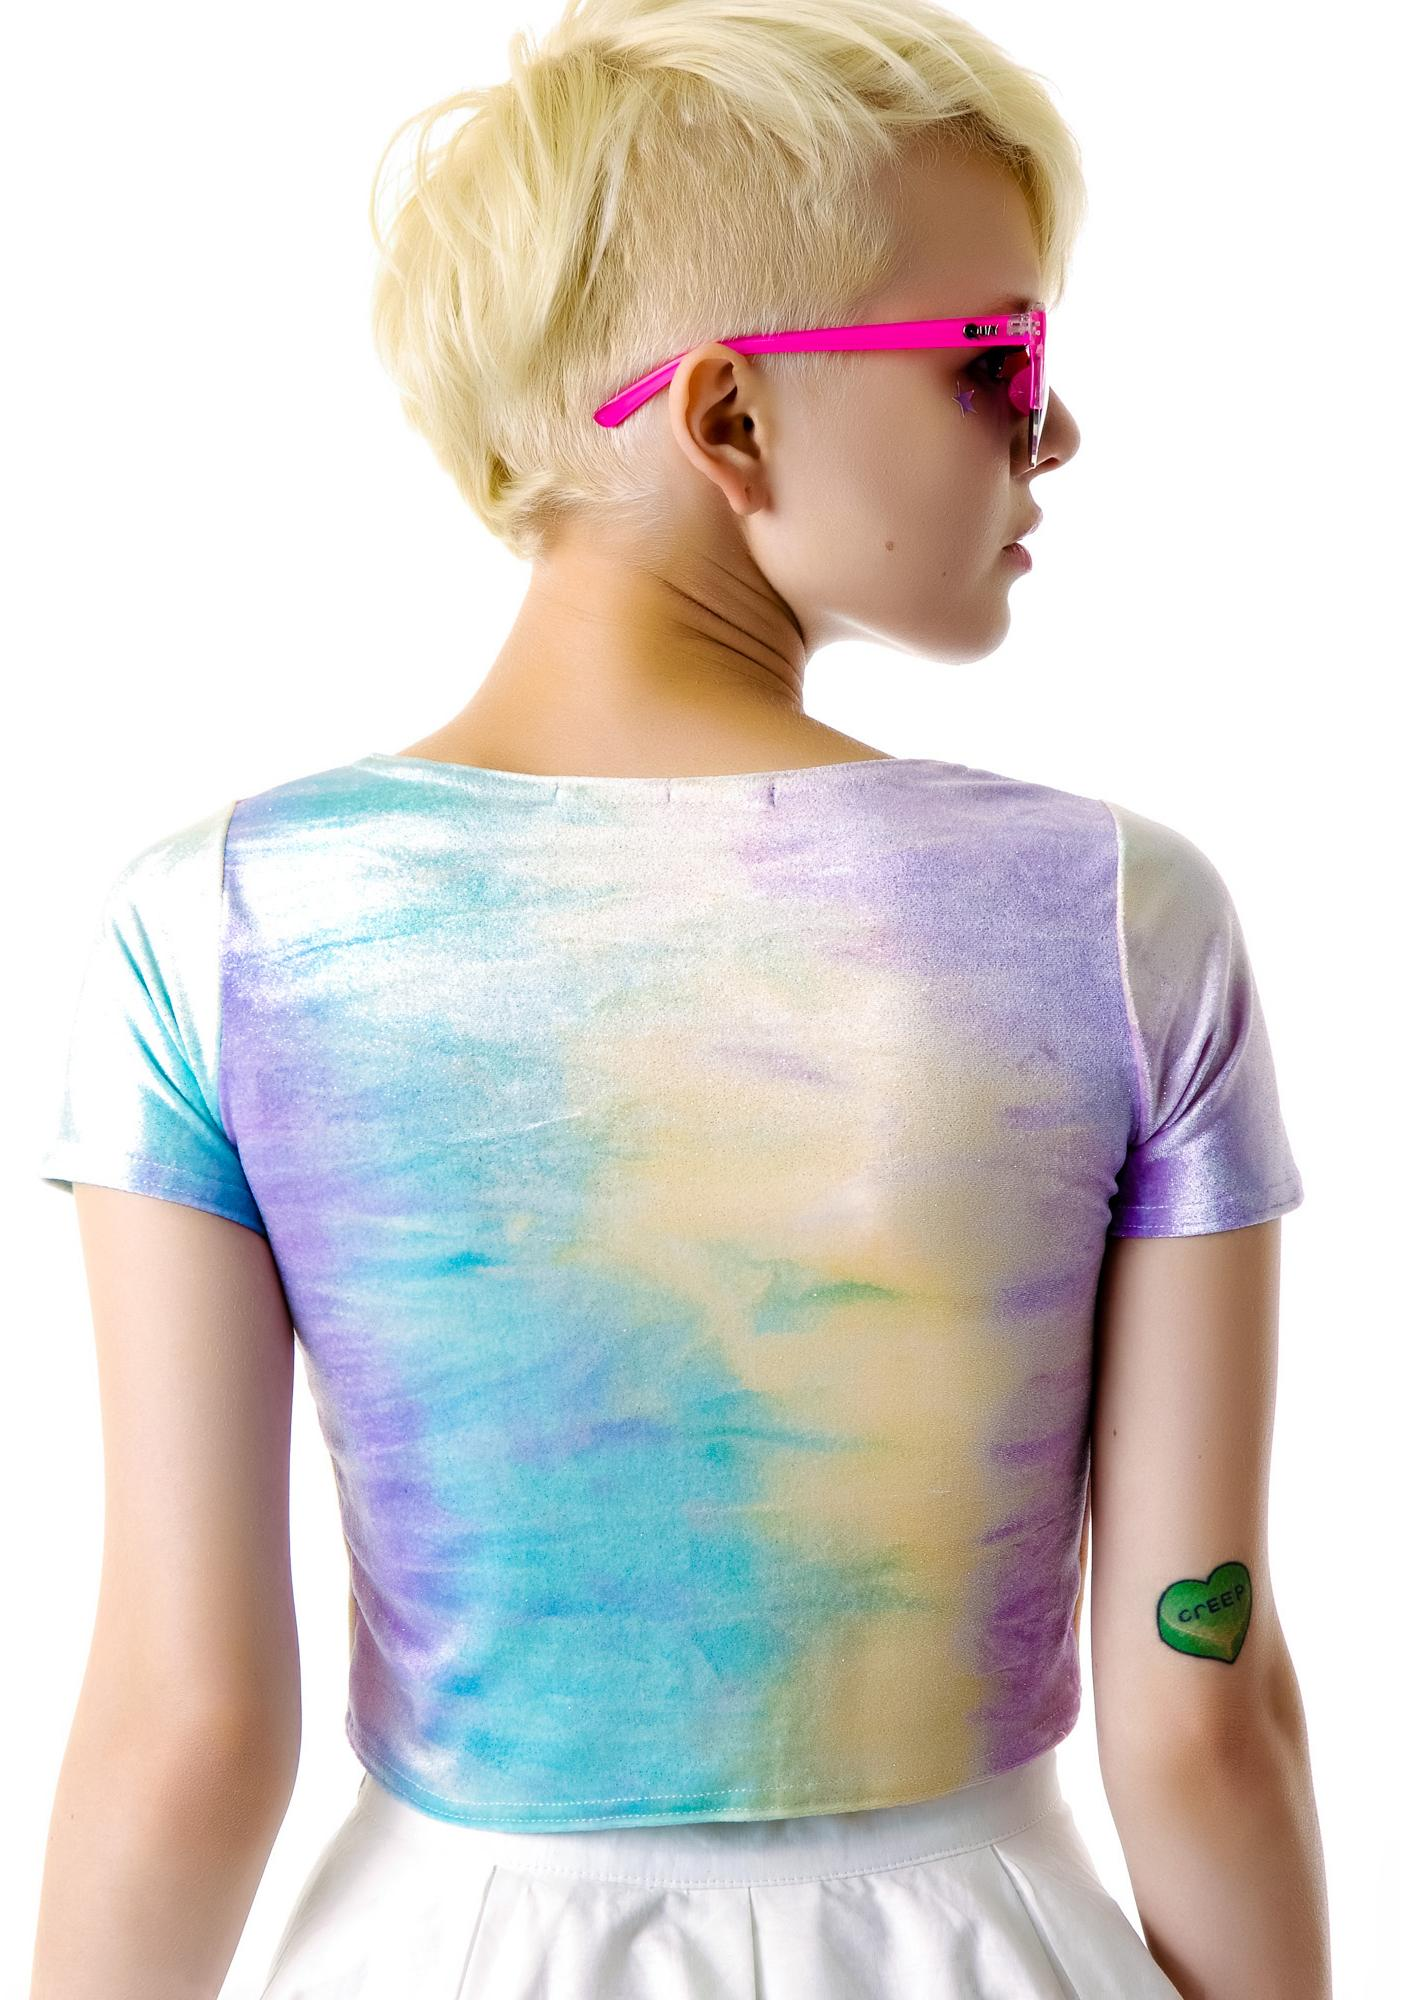 Our Prince of Peace Cosmic Shortstop Tee